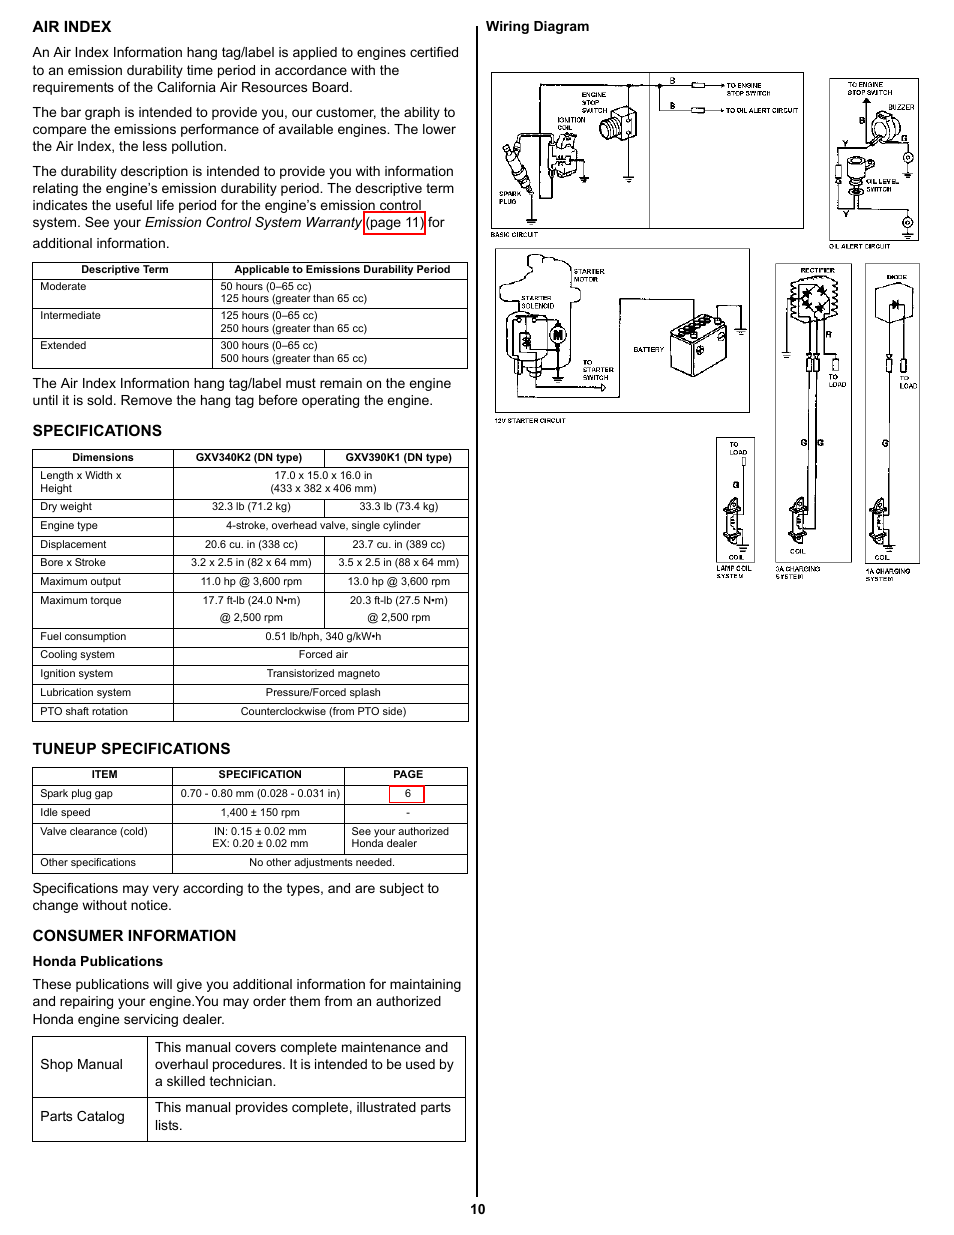 Wiring Diagram Honda Gxv390 Wire Center Engine Parts Air Index Specifications Tuneup User Rh Manualsdir Com Gx390